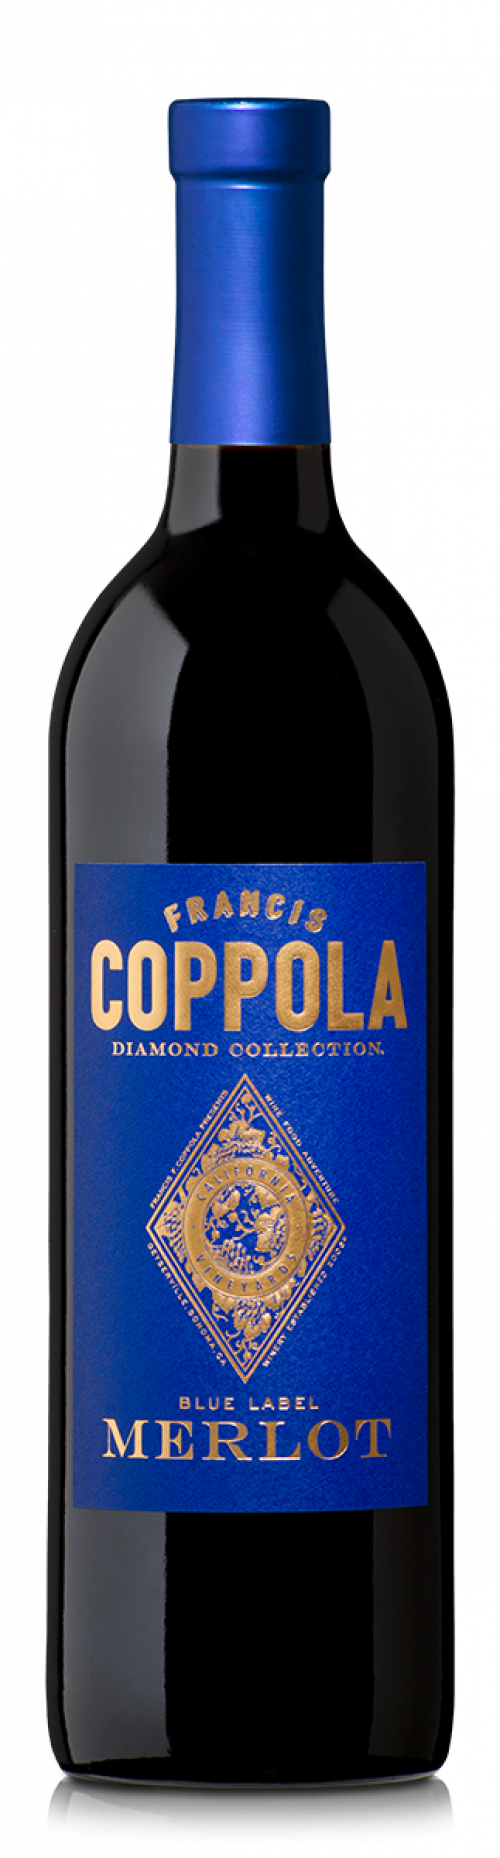 Coppola Merlot 750ml NV